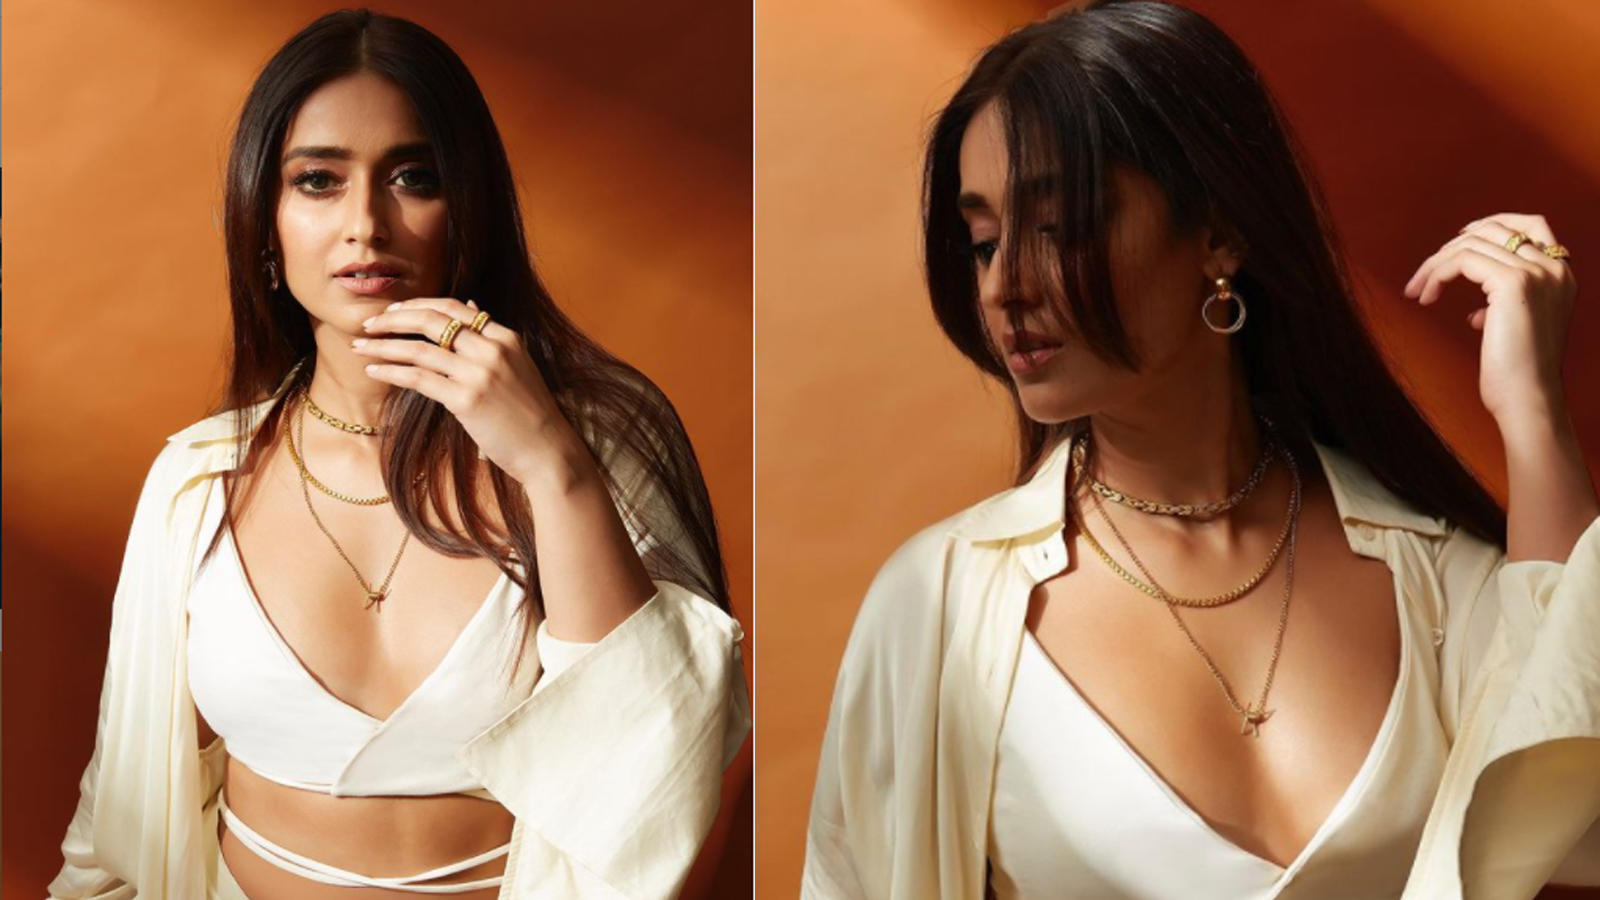 Ileana D'Cruz reveals losing a dear family member amid the pandemic hit her very hard | Hindi Movie News – Bollywood – Times of India